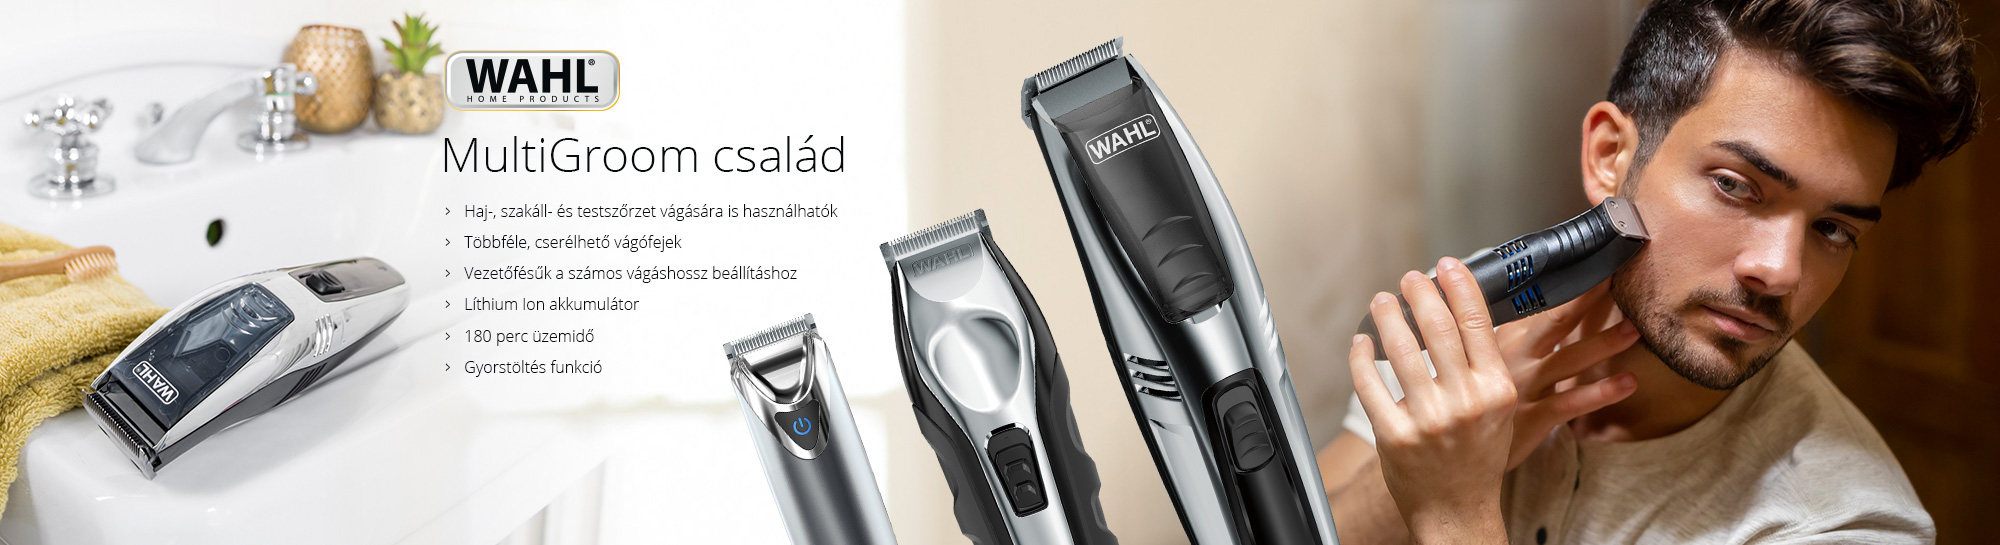 Wahl MultiGroom